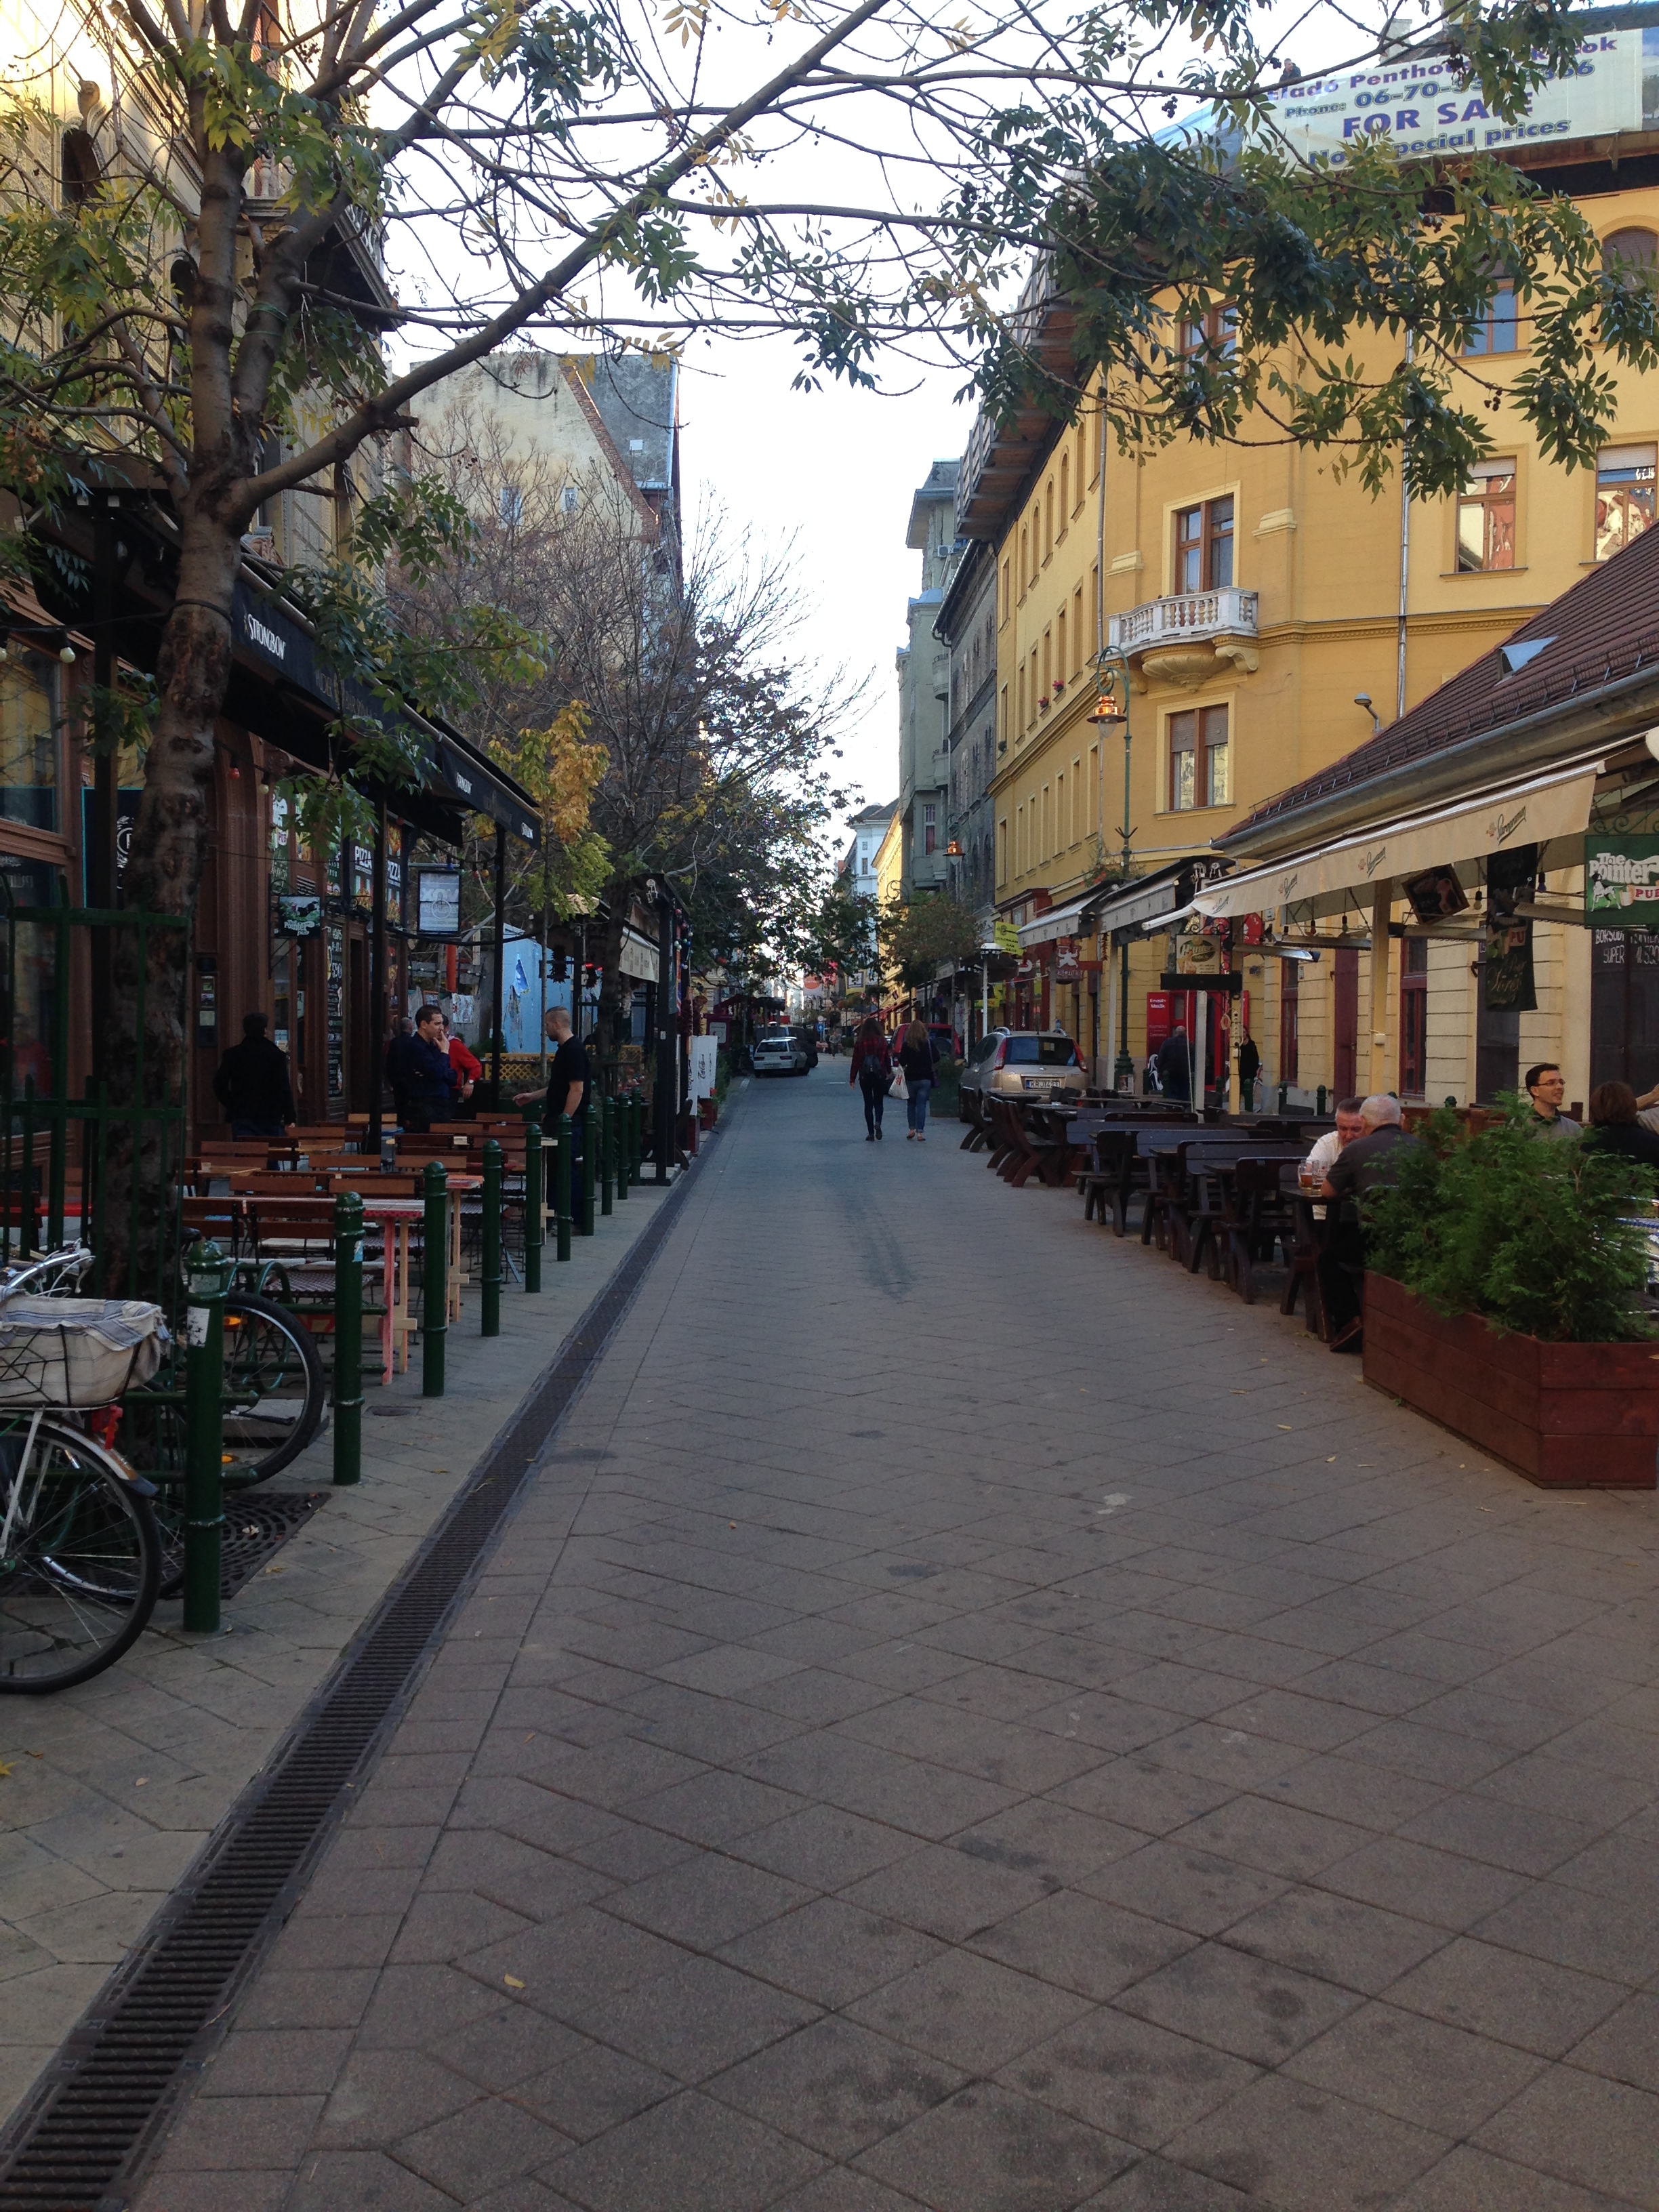 Ráday utca, a street famous for its collection of cafés and restaurants